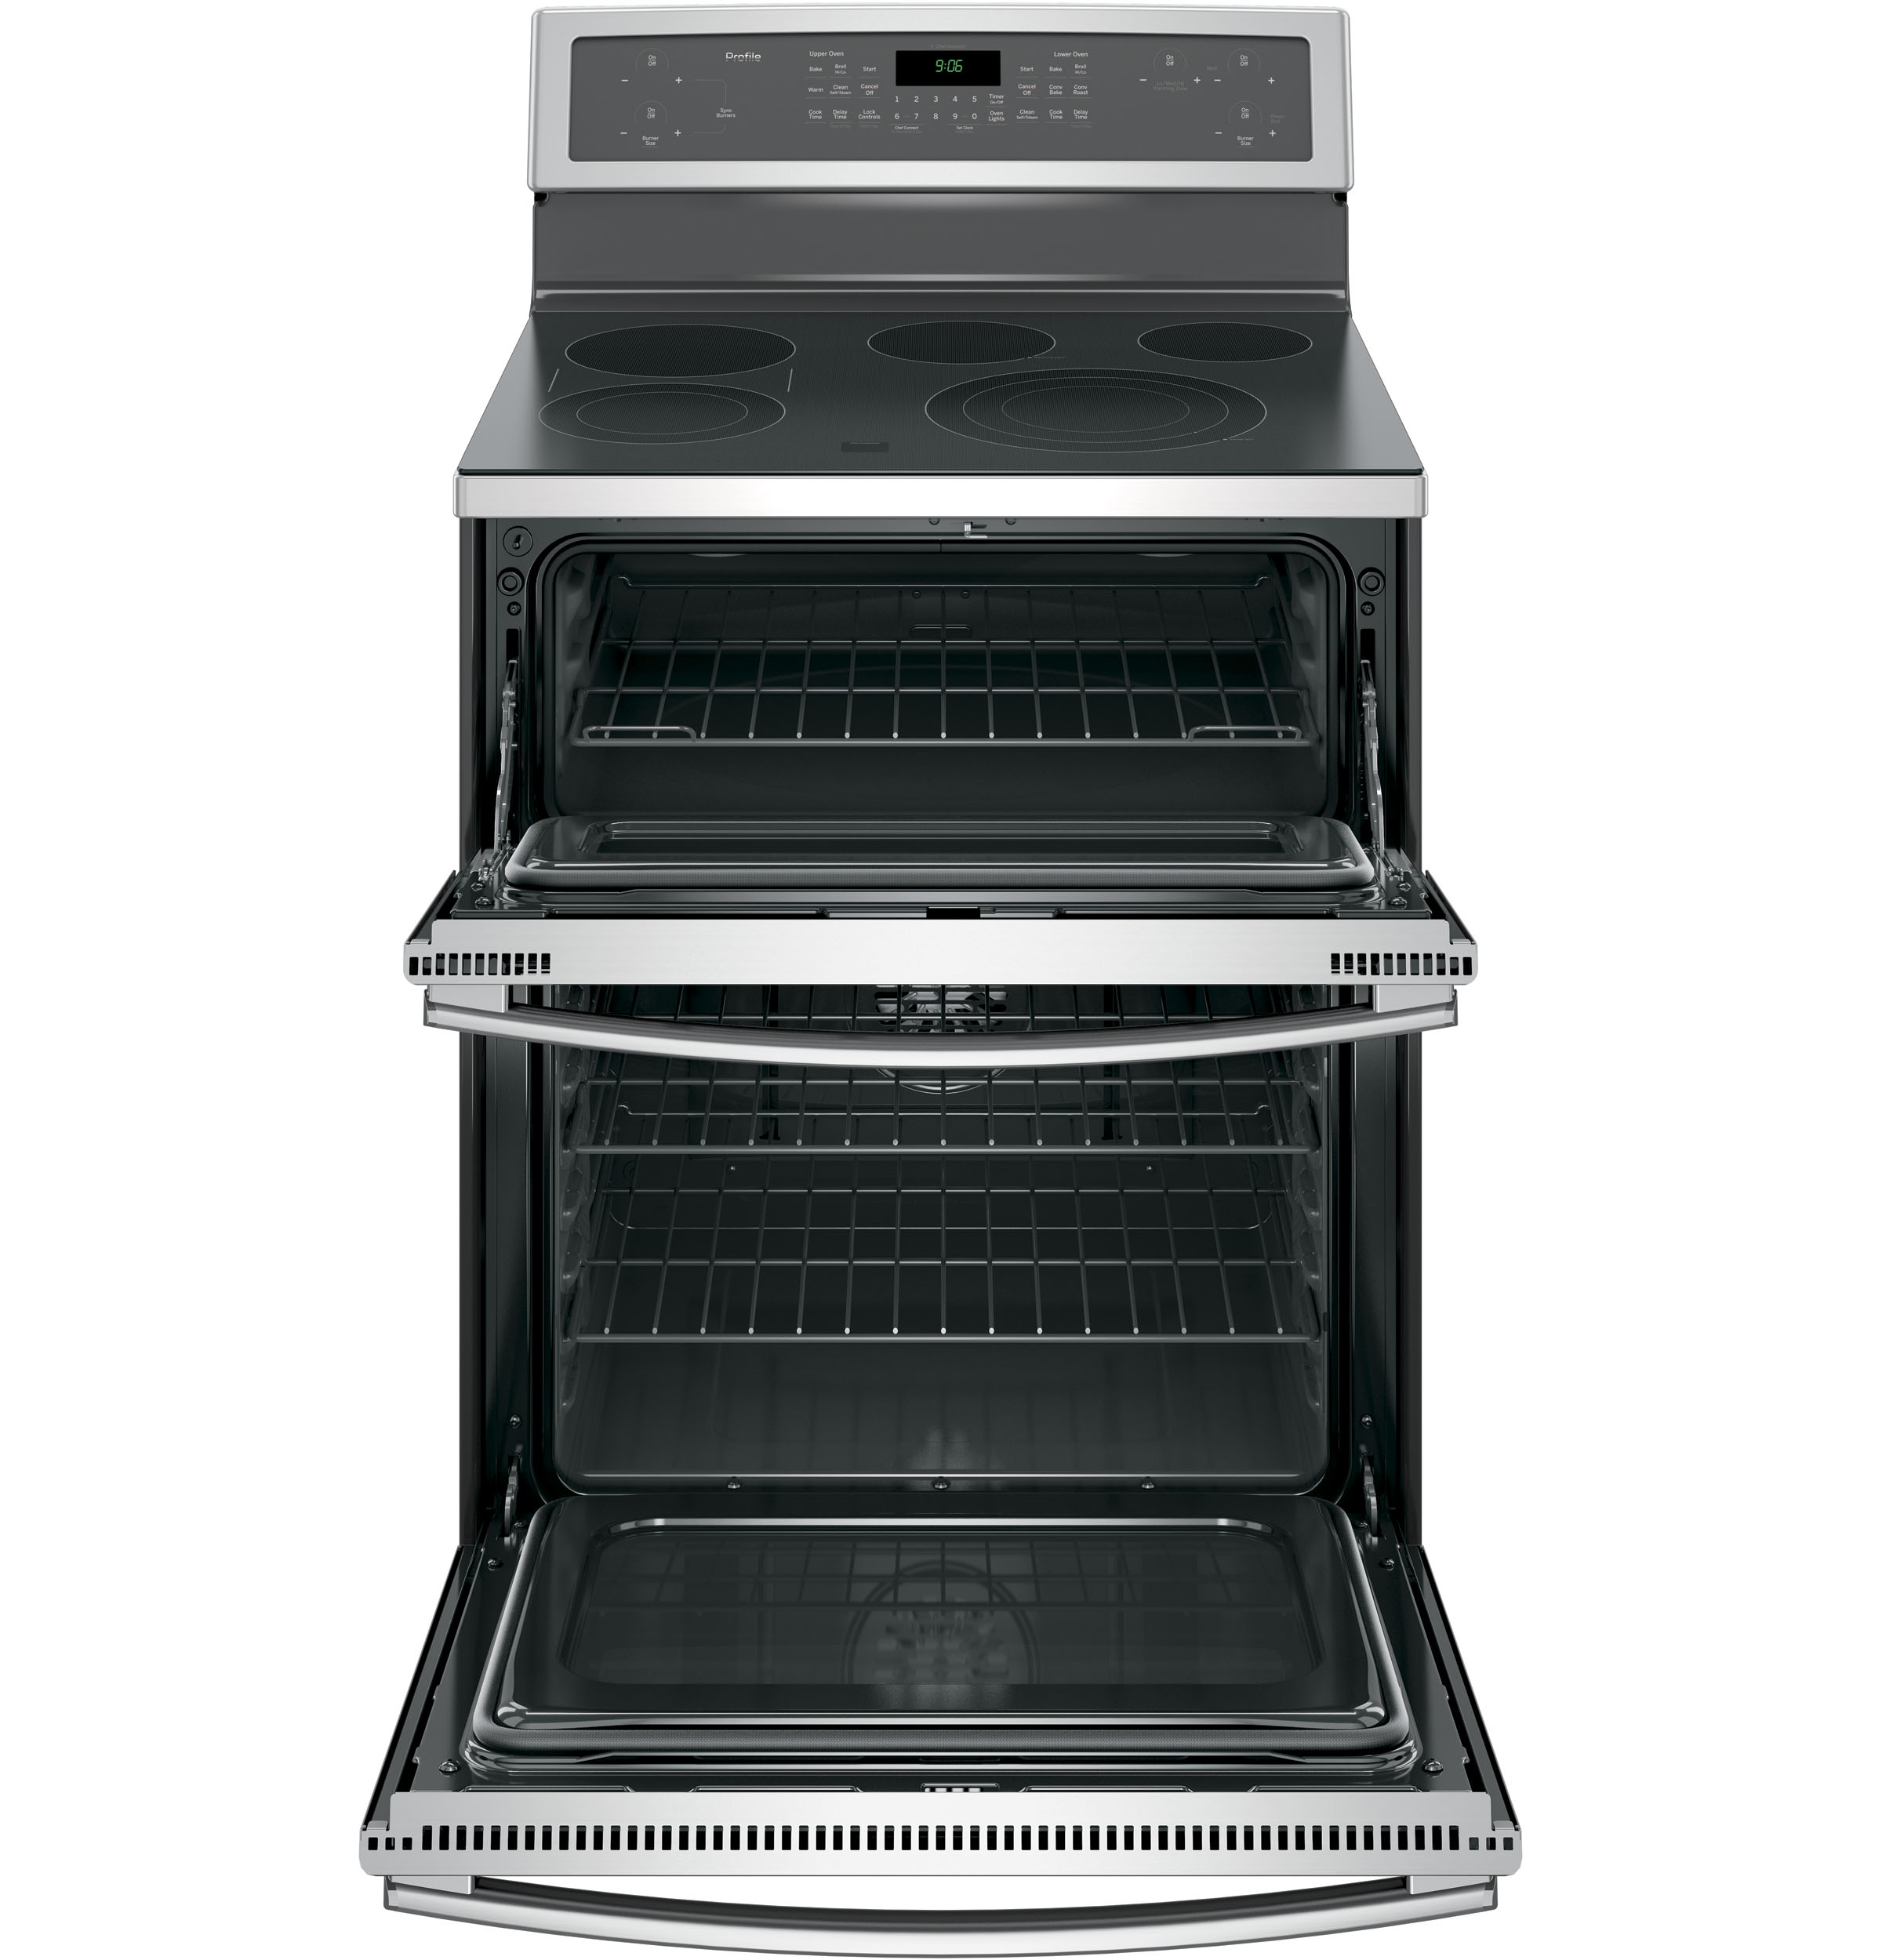 GE Profile PB960SJSS 6.6 cu. ft. Electric Range w/ Double Convection Oven - Stainless Steel